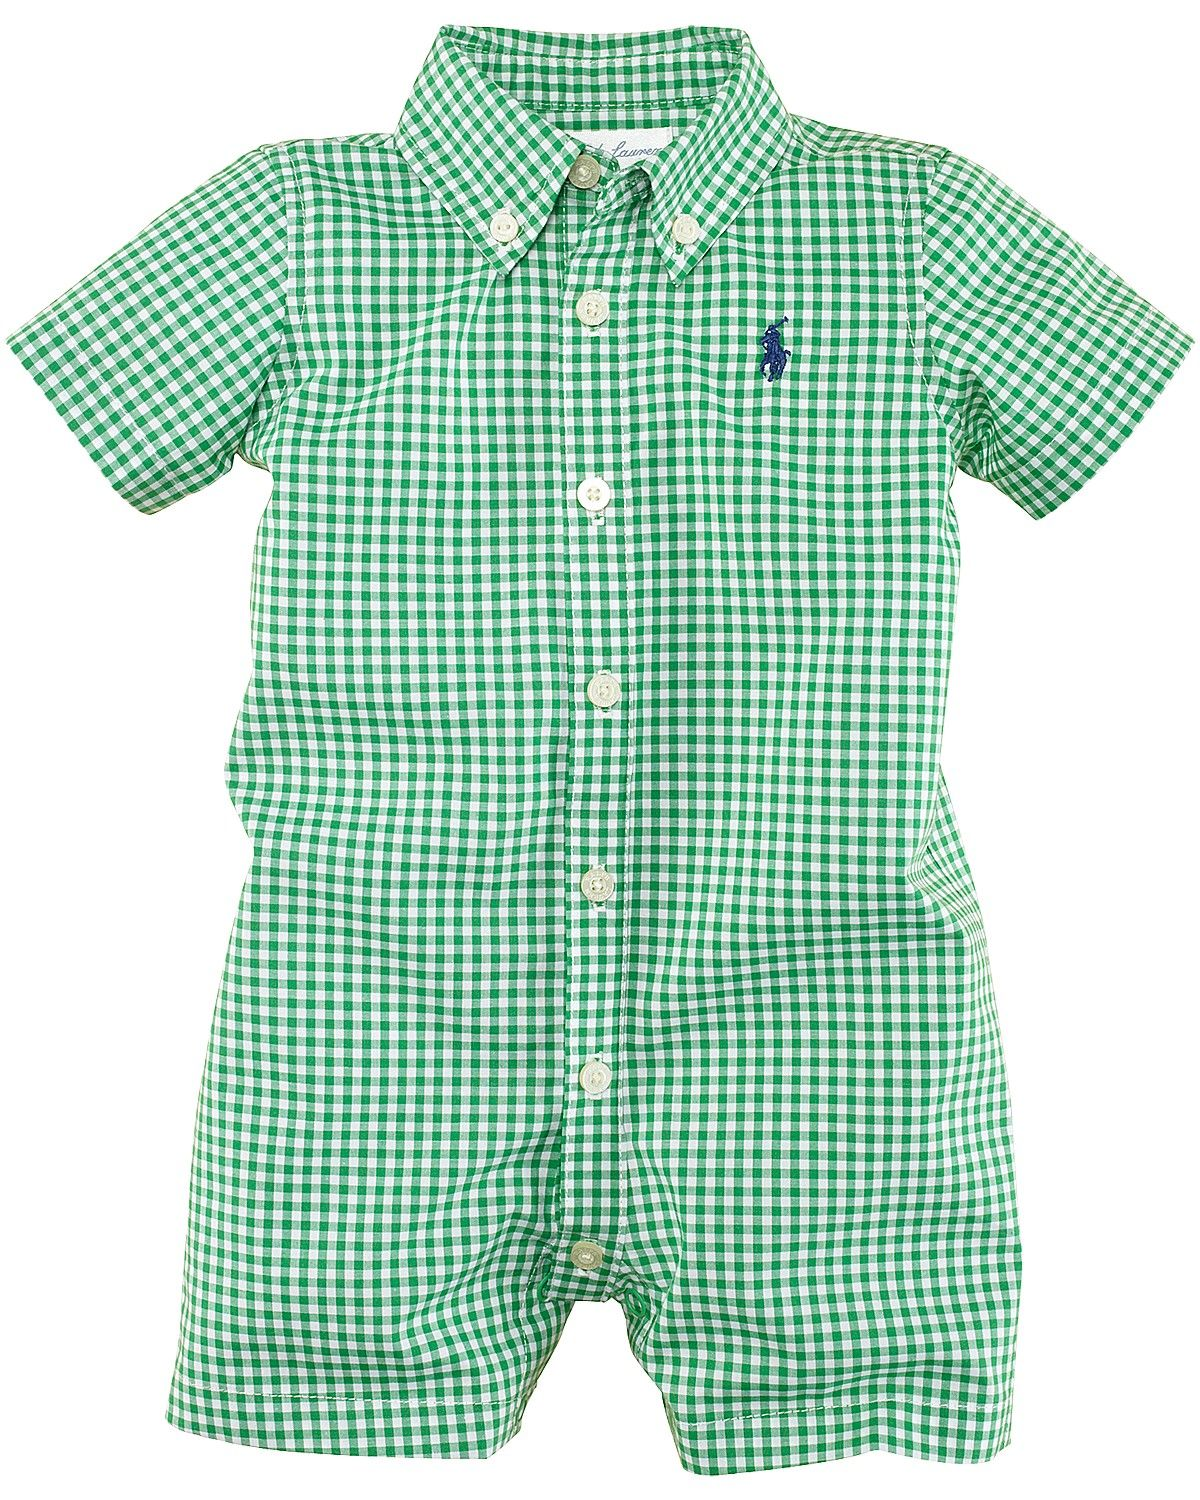 dbf9307fb581 WOULD LOOK SO CUTE ON RANDALL Ralph Lauren baby boy!